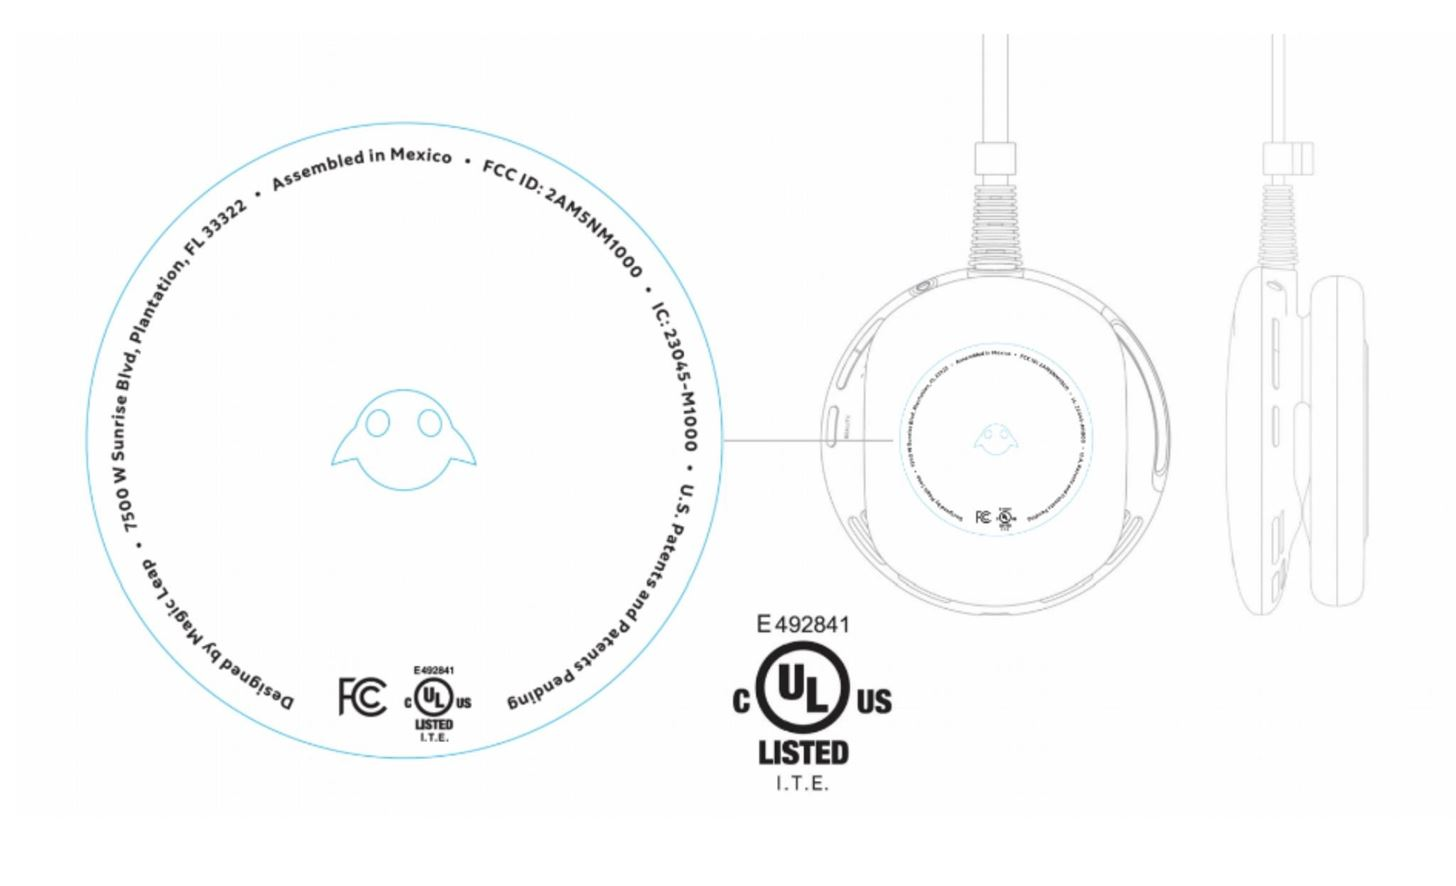 Magic Leap One Fits through FCC certification, setting the stage for forthcoming publication